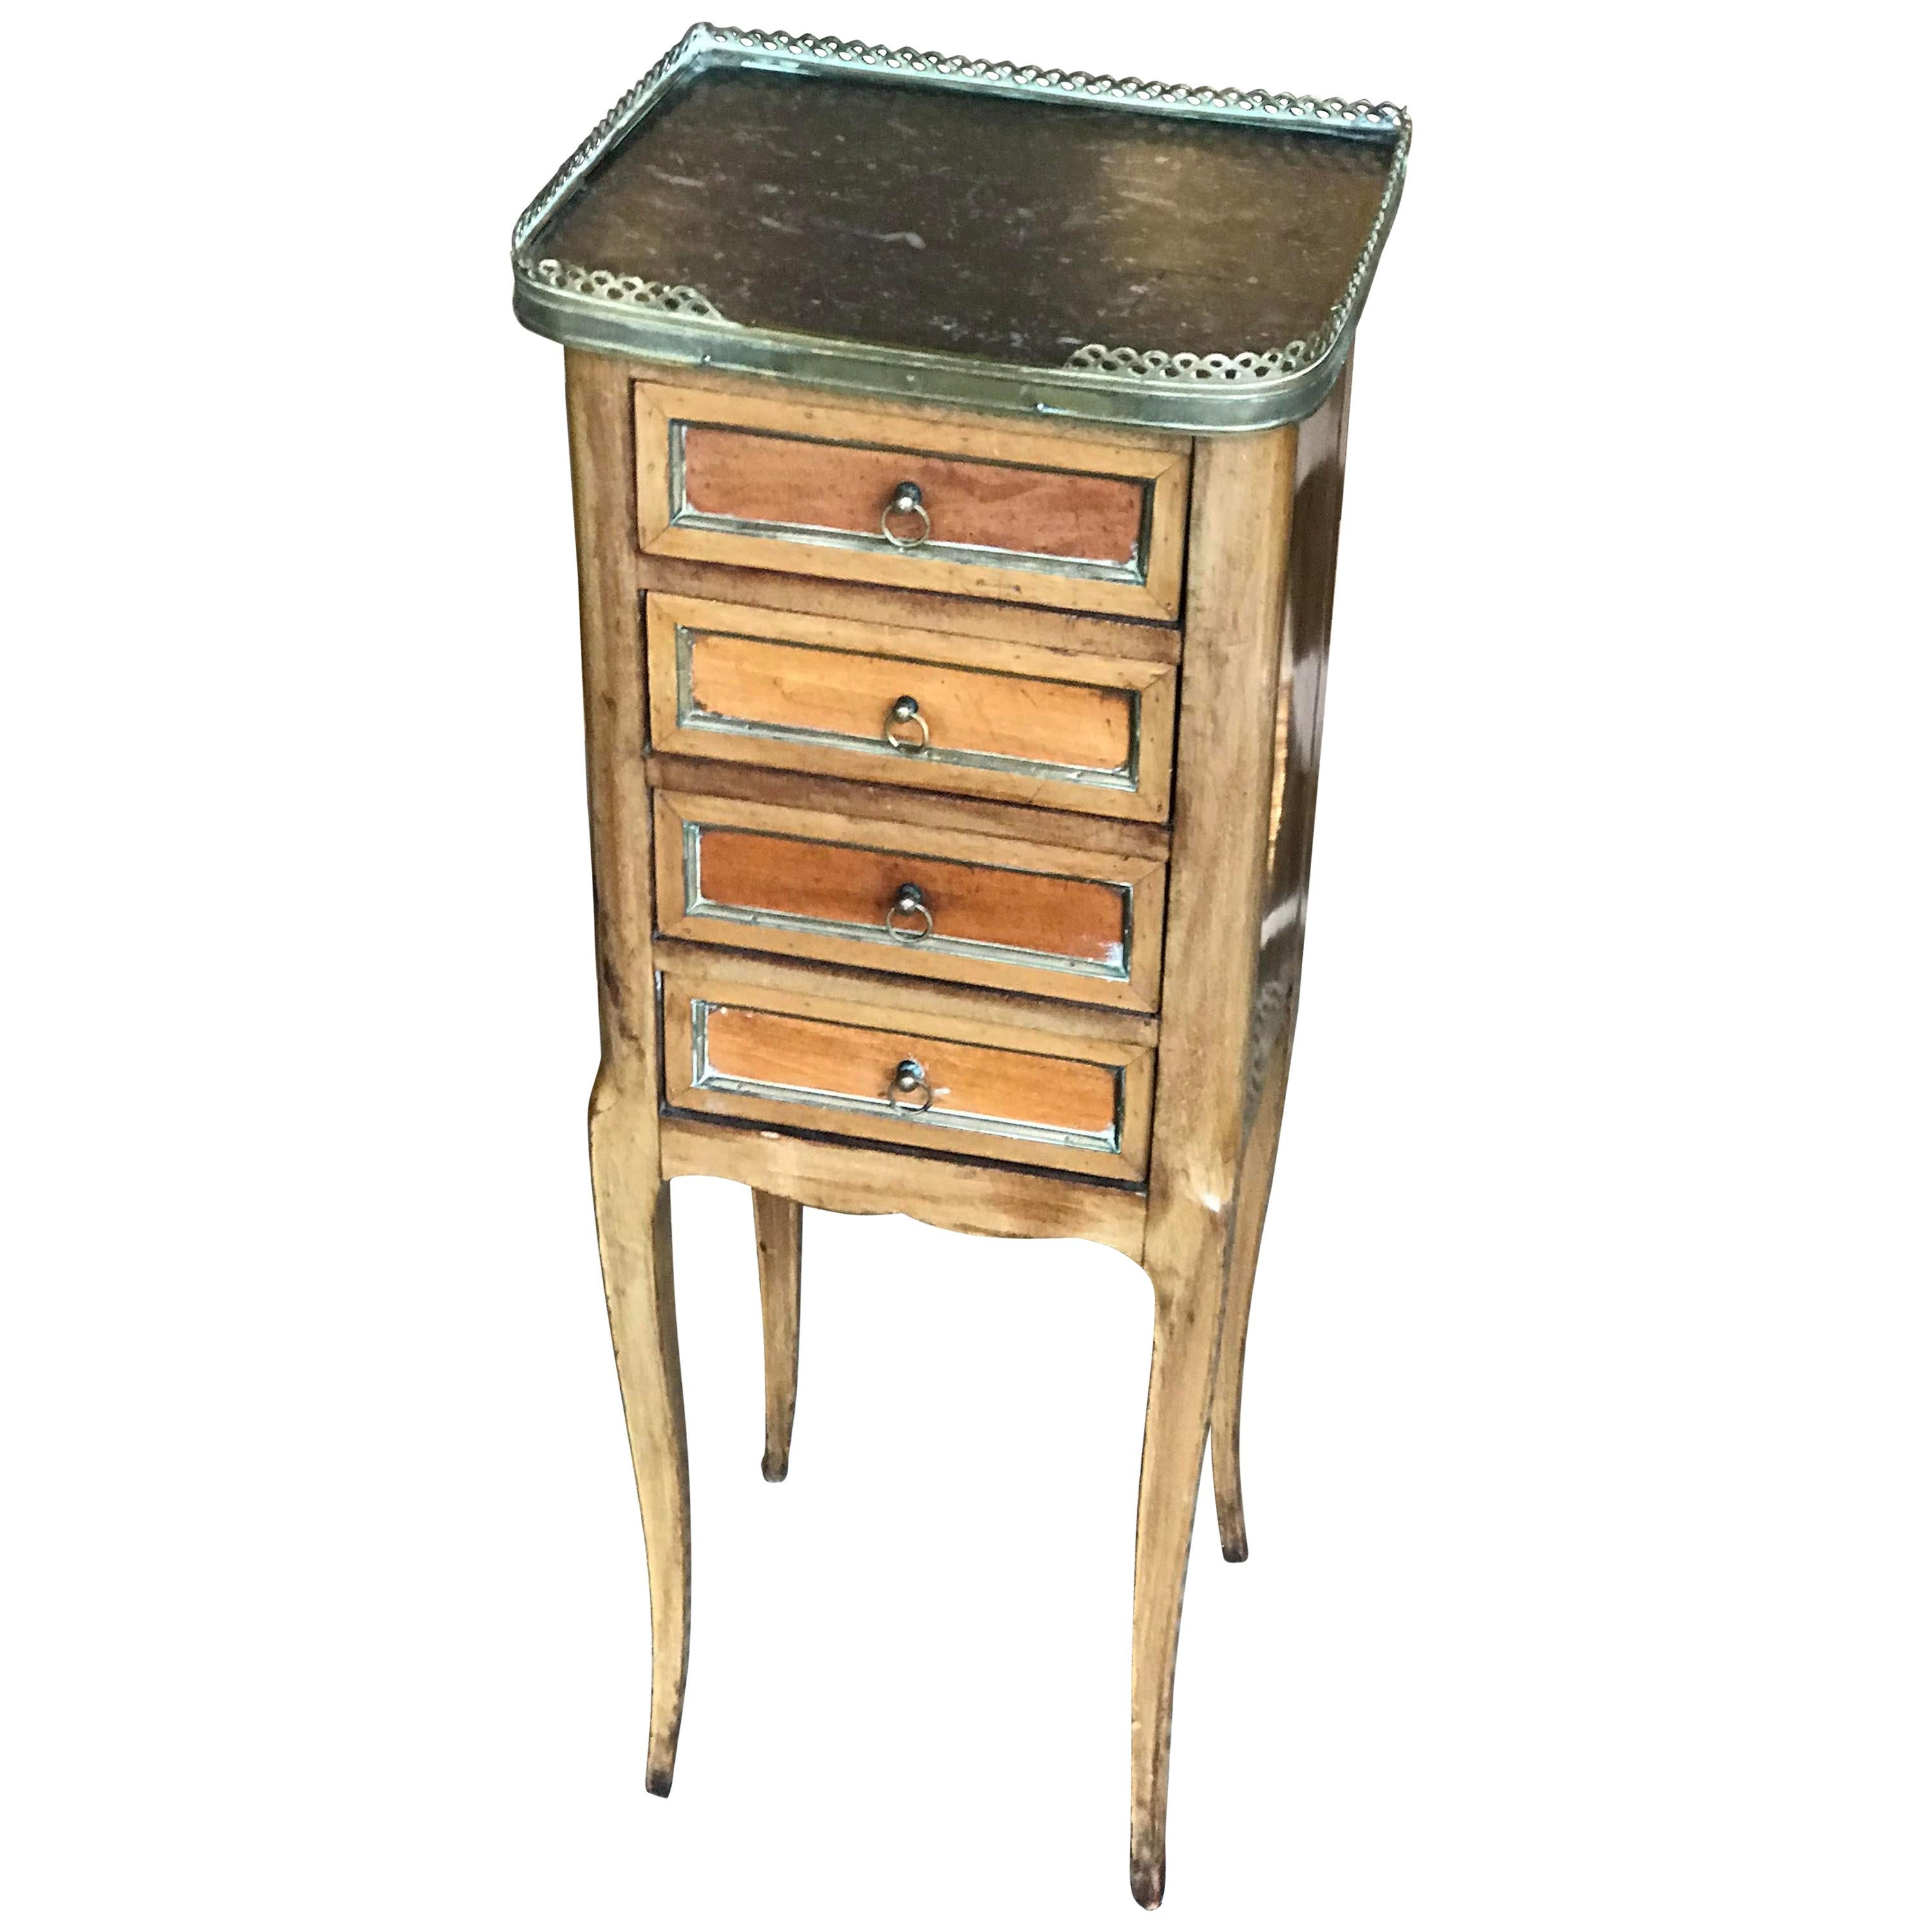 French 19th Century Traditional Black Marble-Top Petite Commode